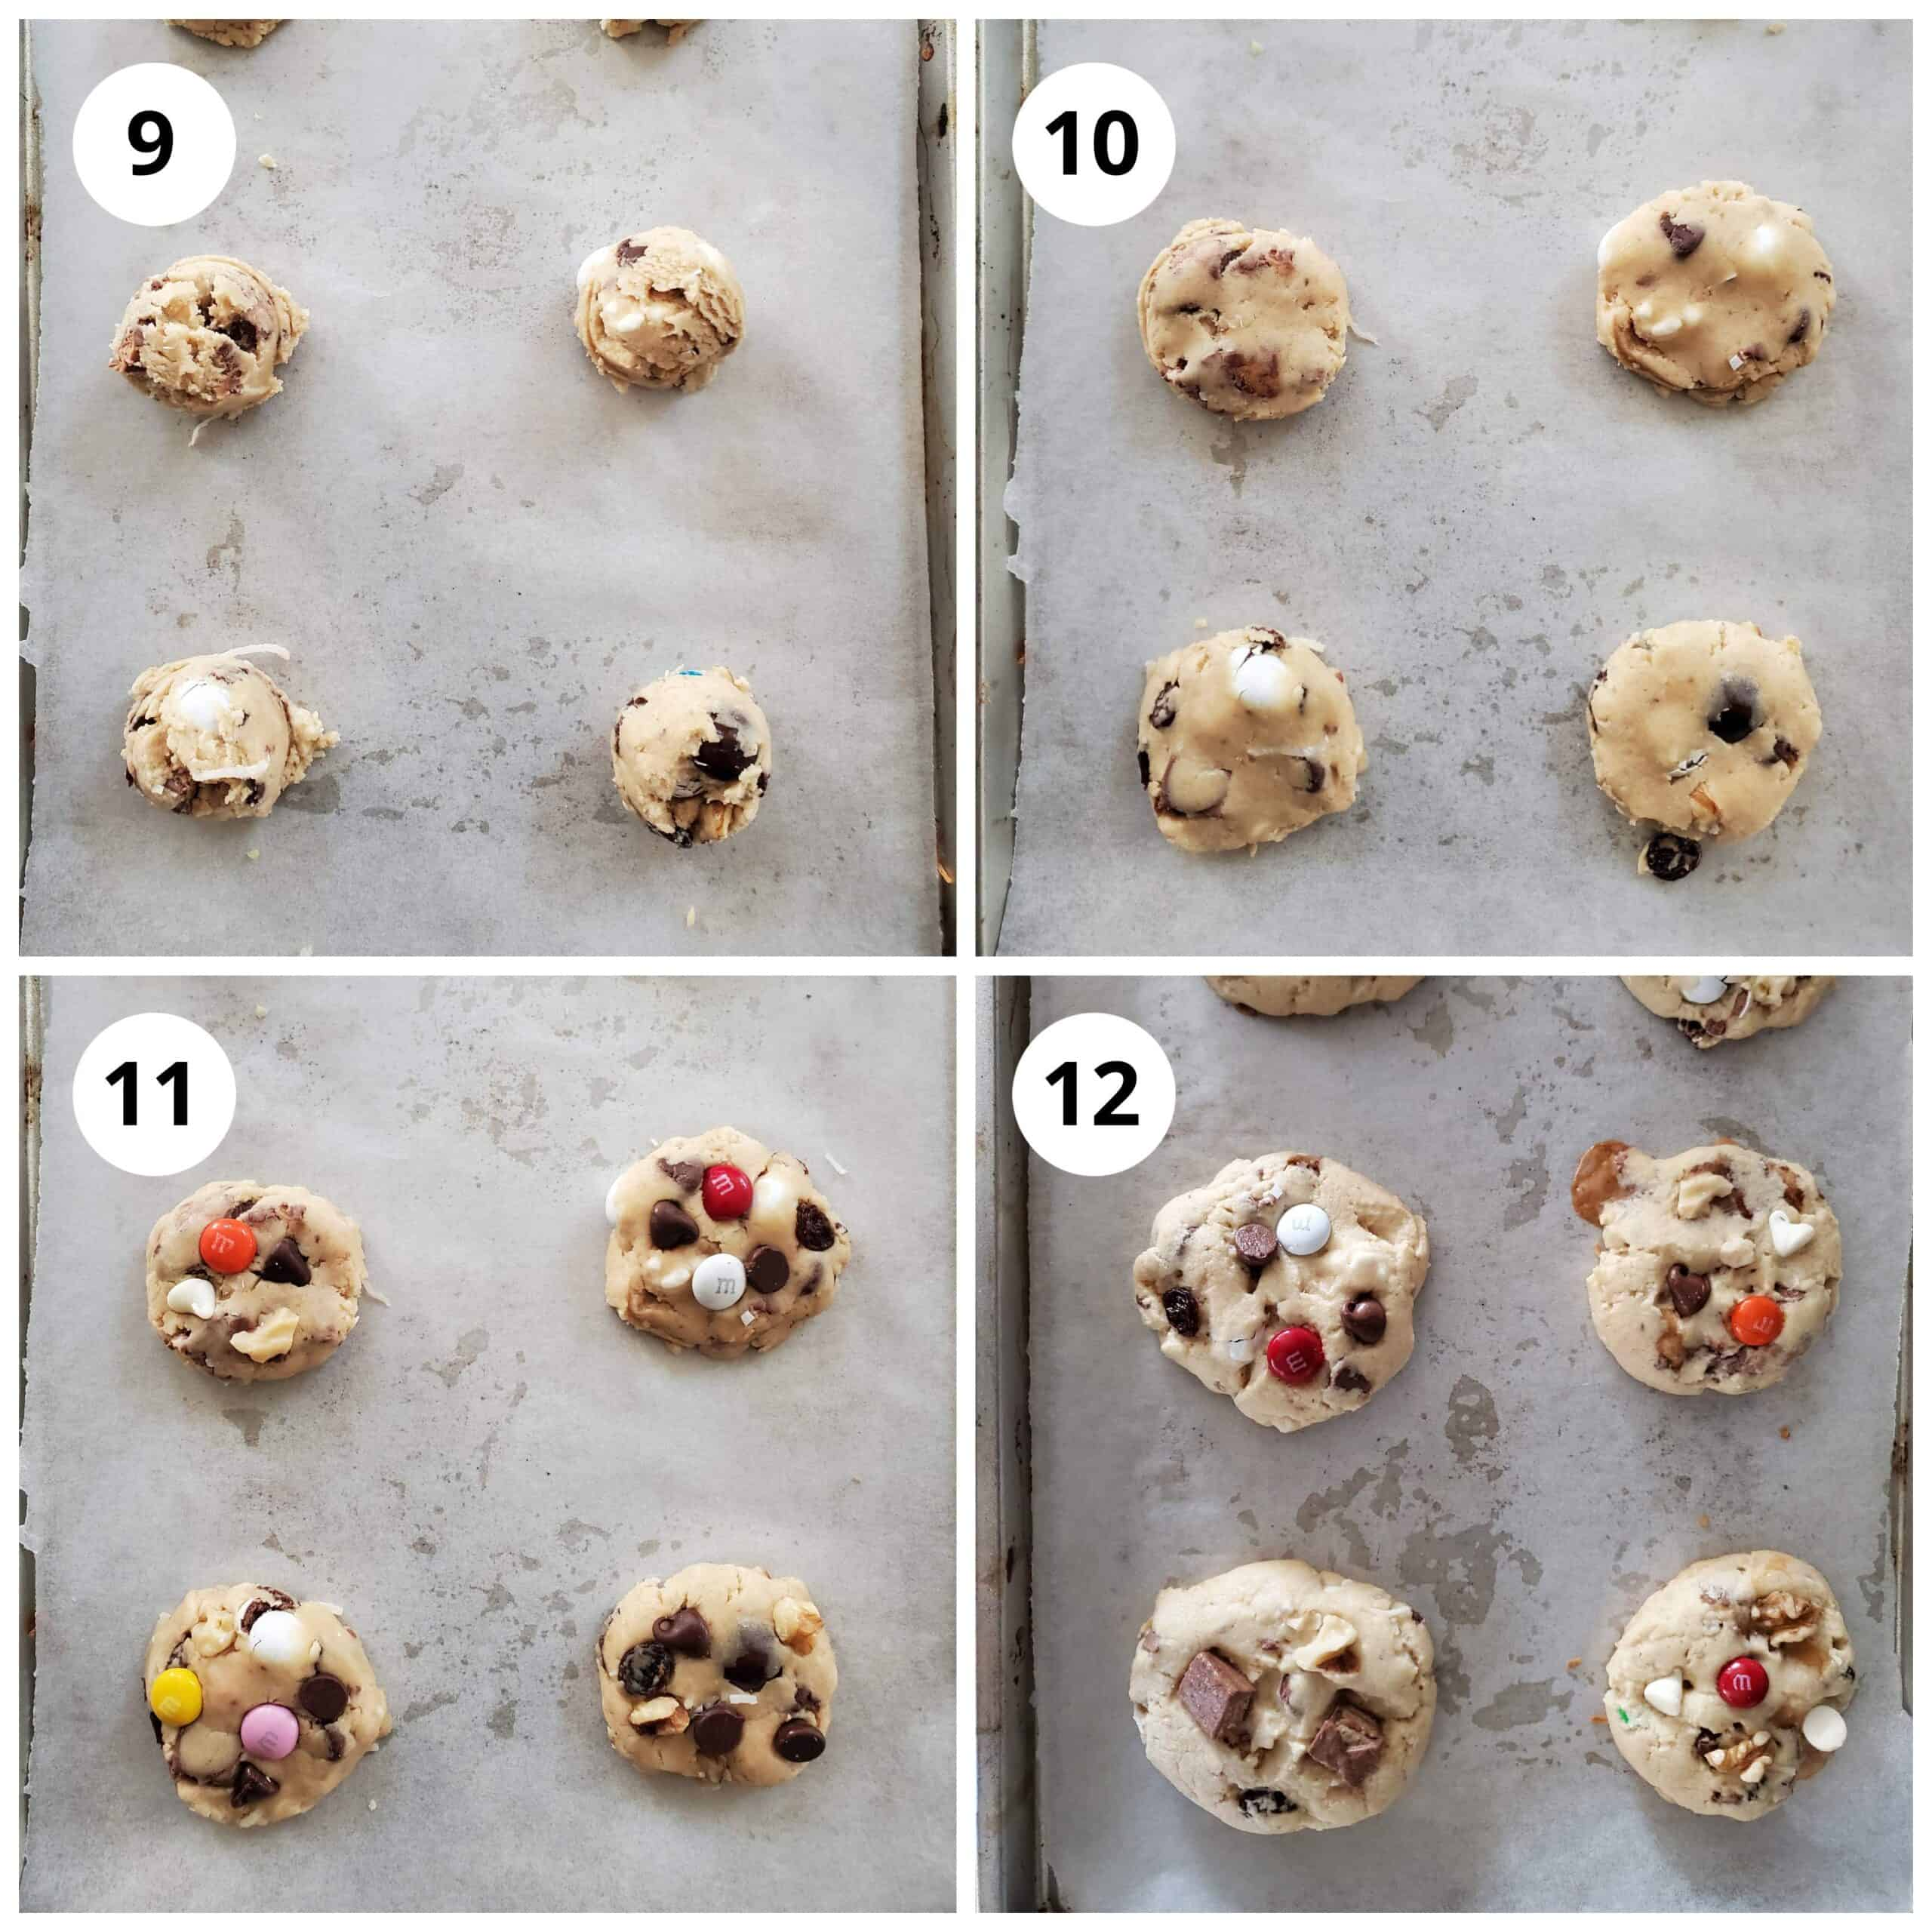 Make small balls of the cookie dough and flatten them. Add some more mixin and bake